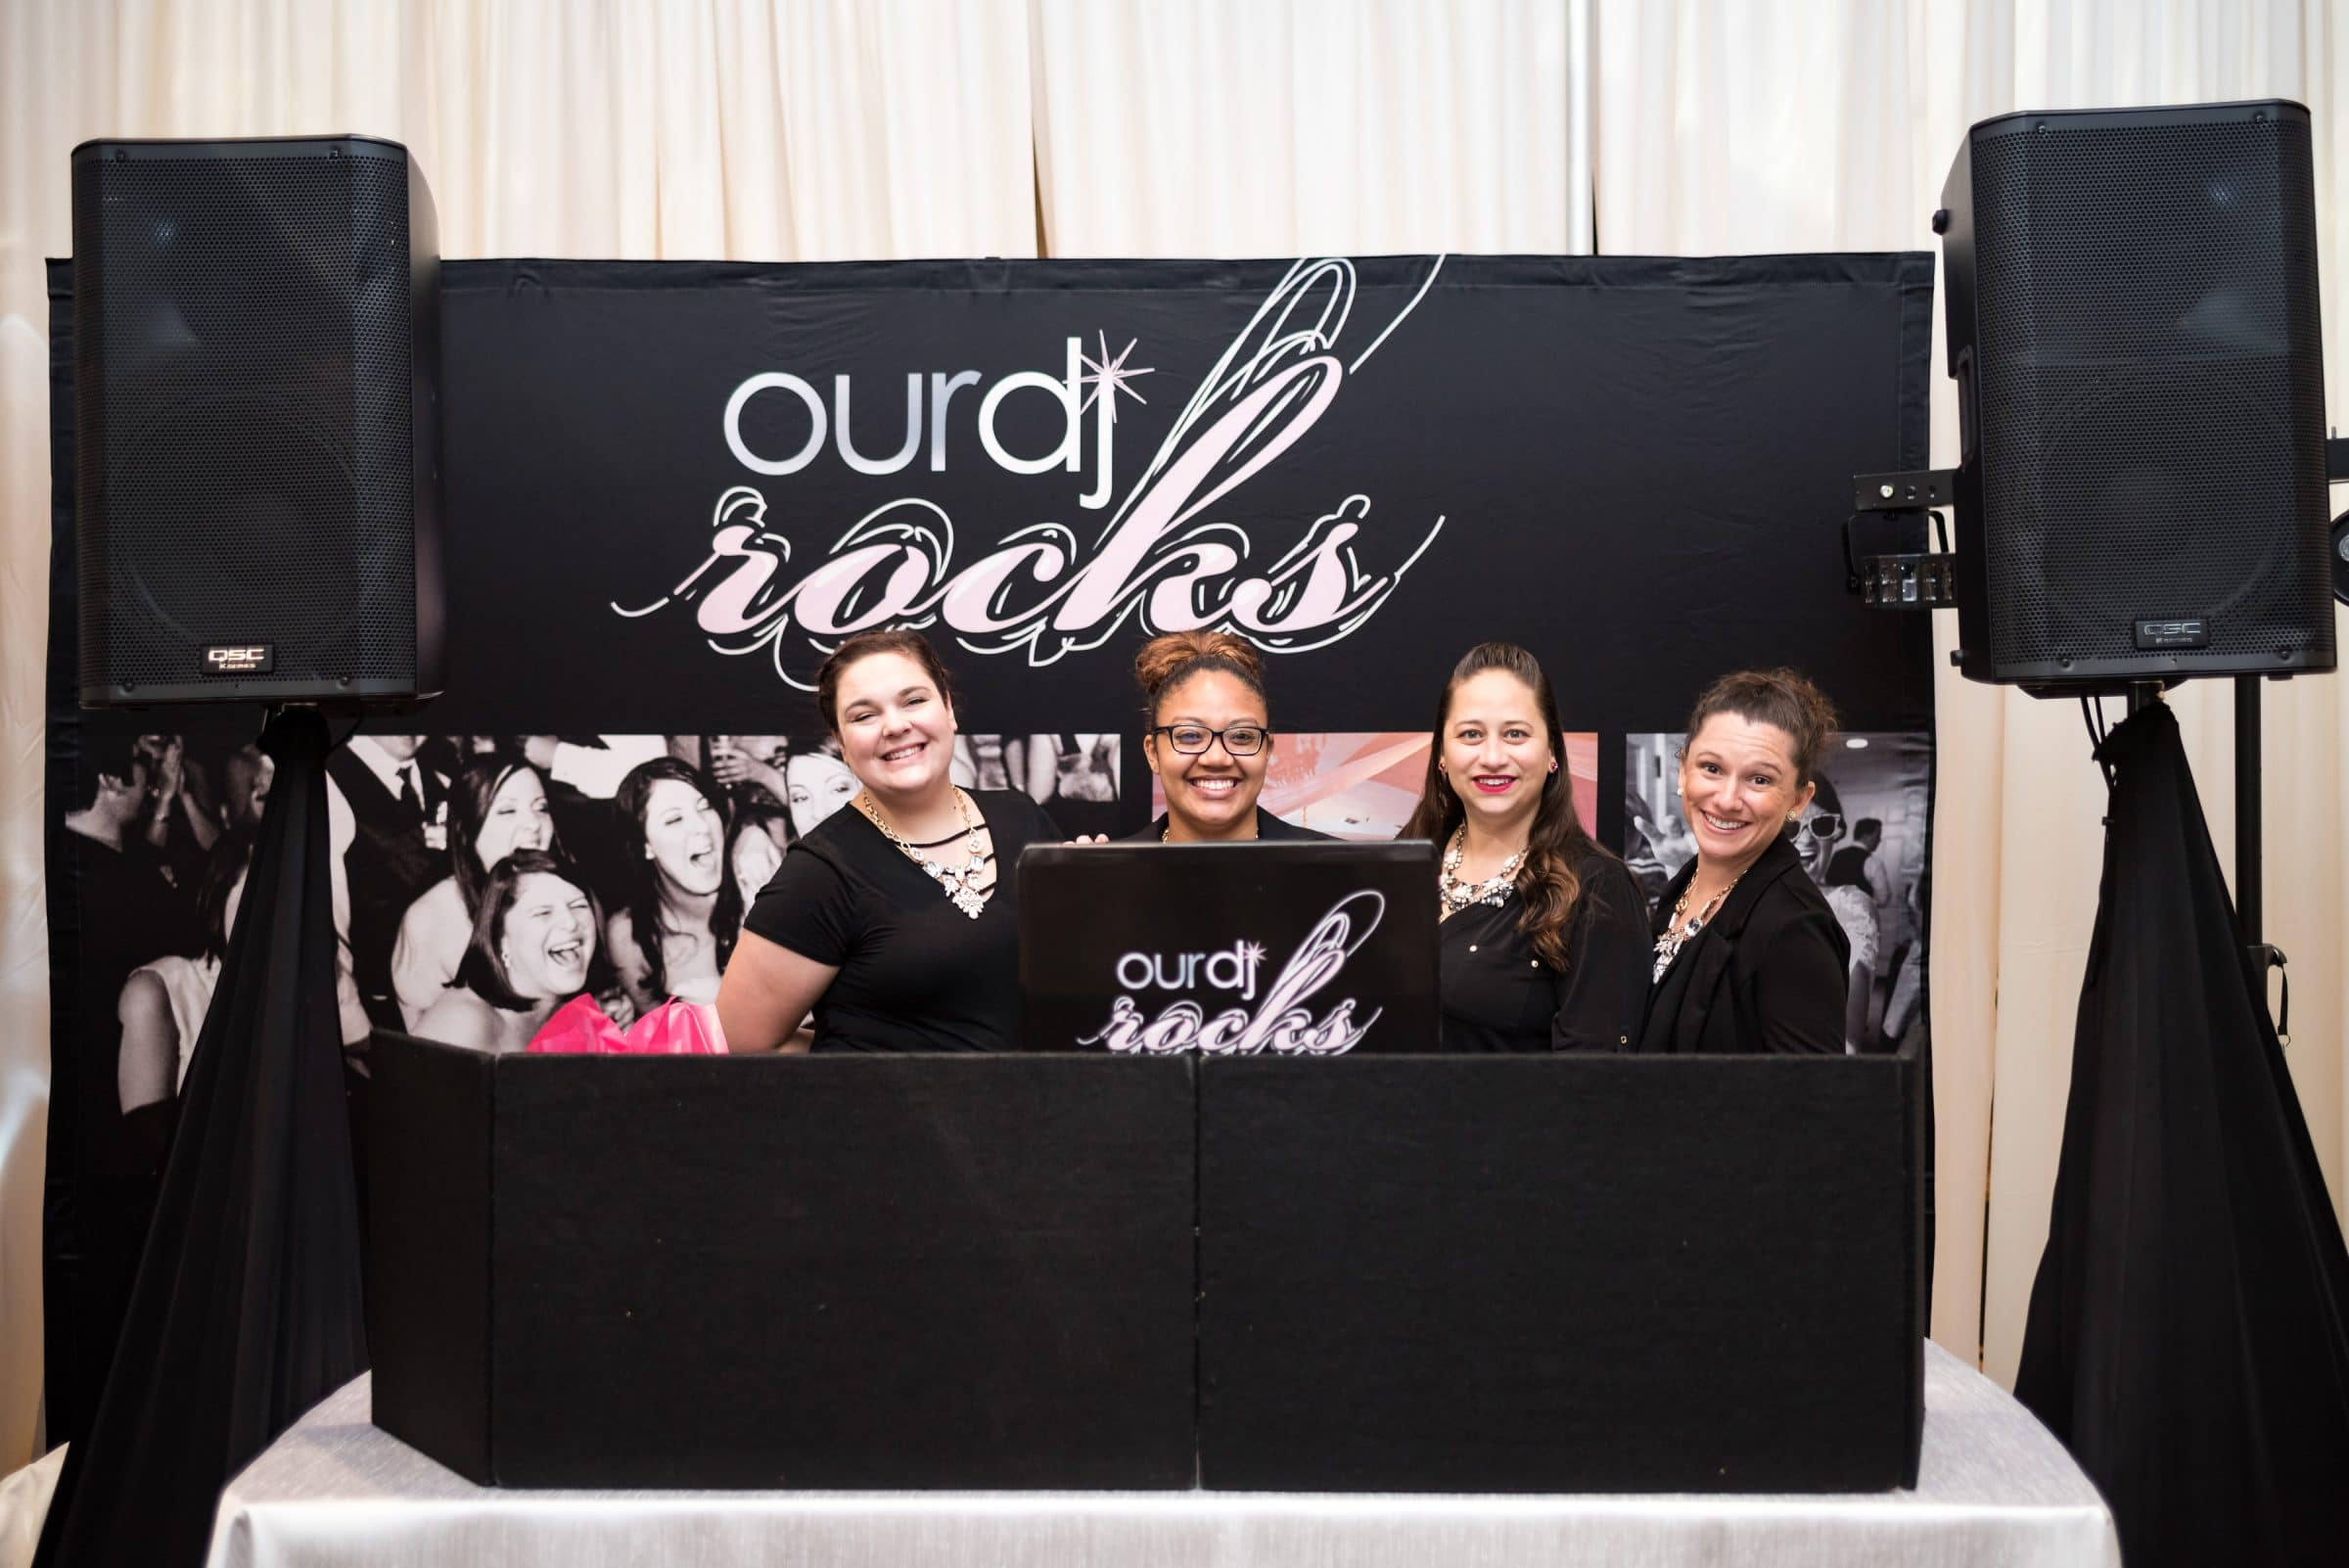 Our DJ Rocks Wedding Show Booth with Four Female DJS